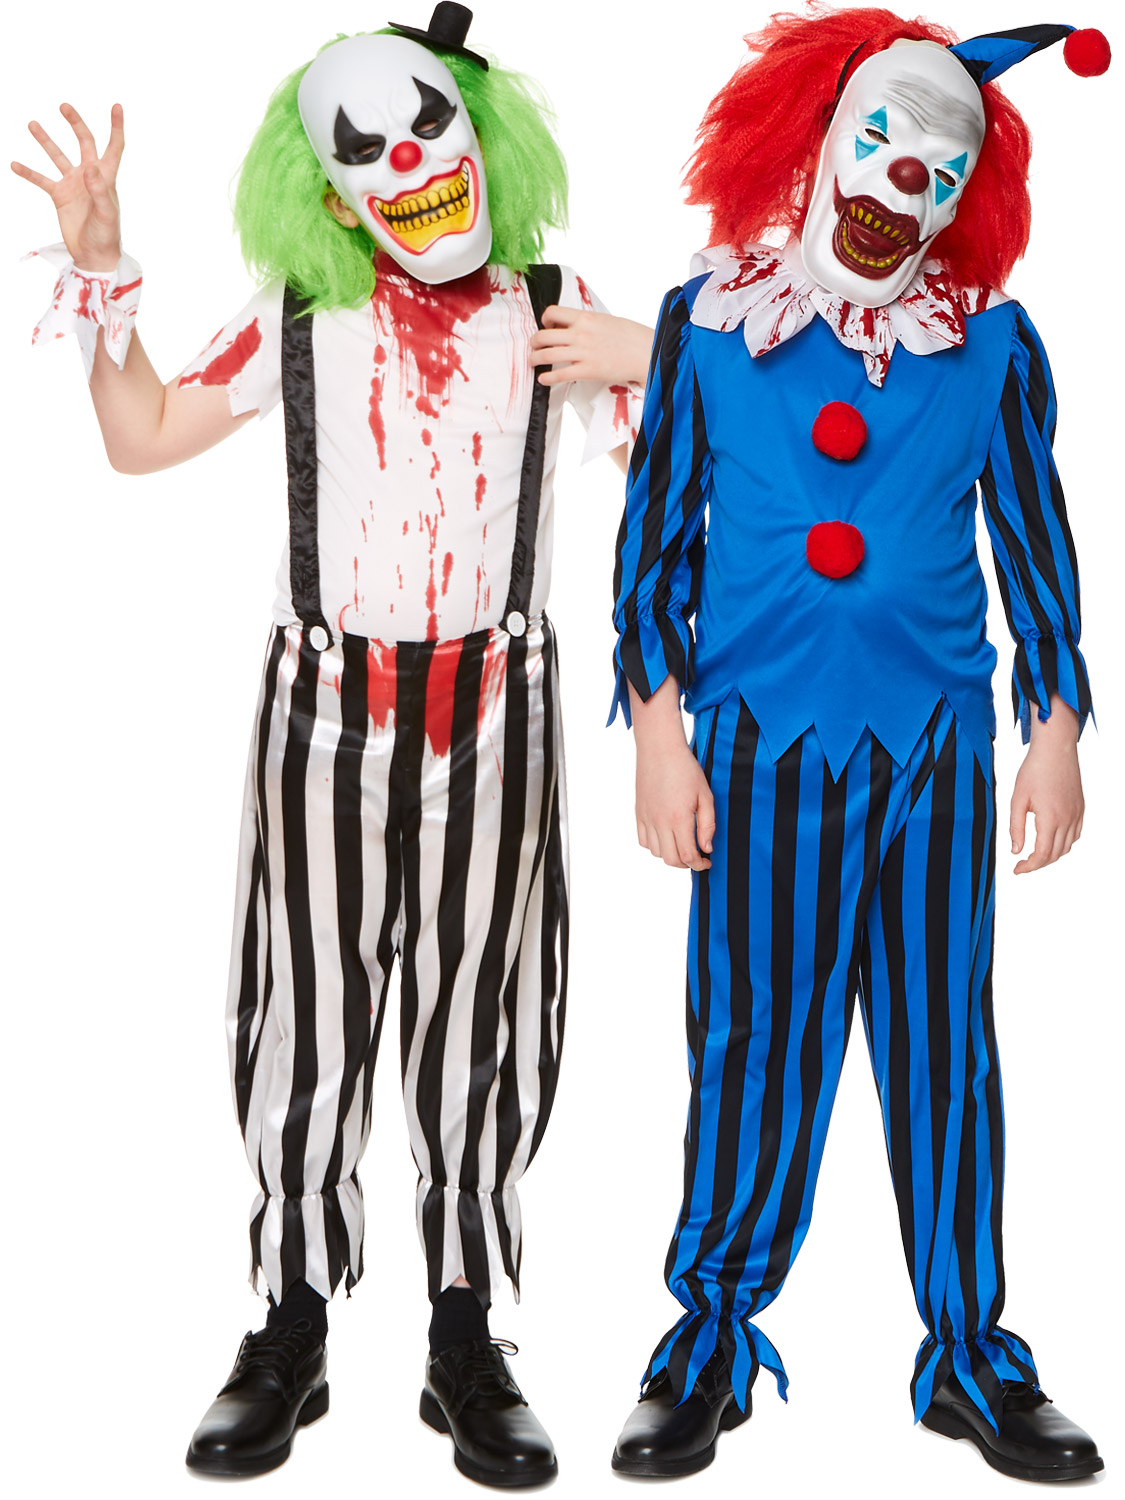 Boys Evil Scary Clown Costume Childs Halloween Circus Fancy Dress Kids Outfit - eBay